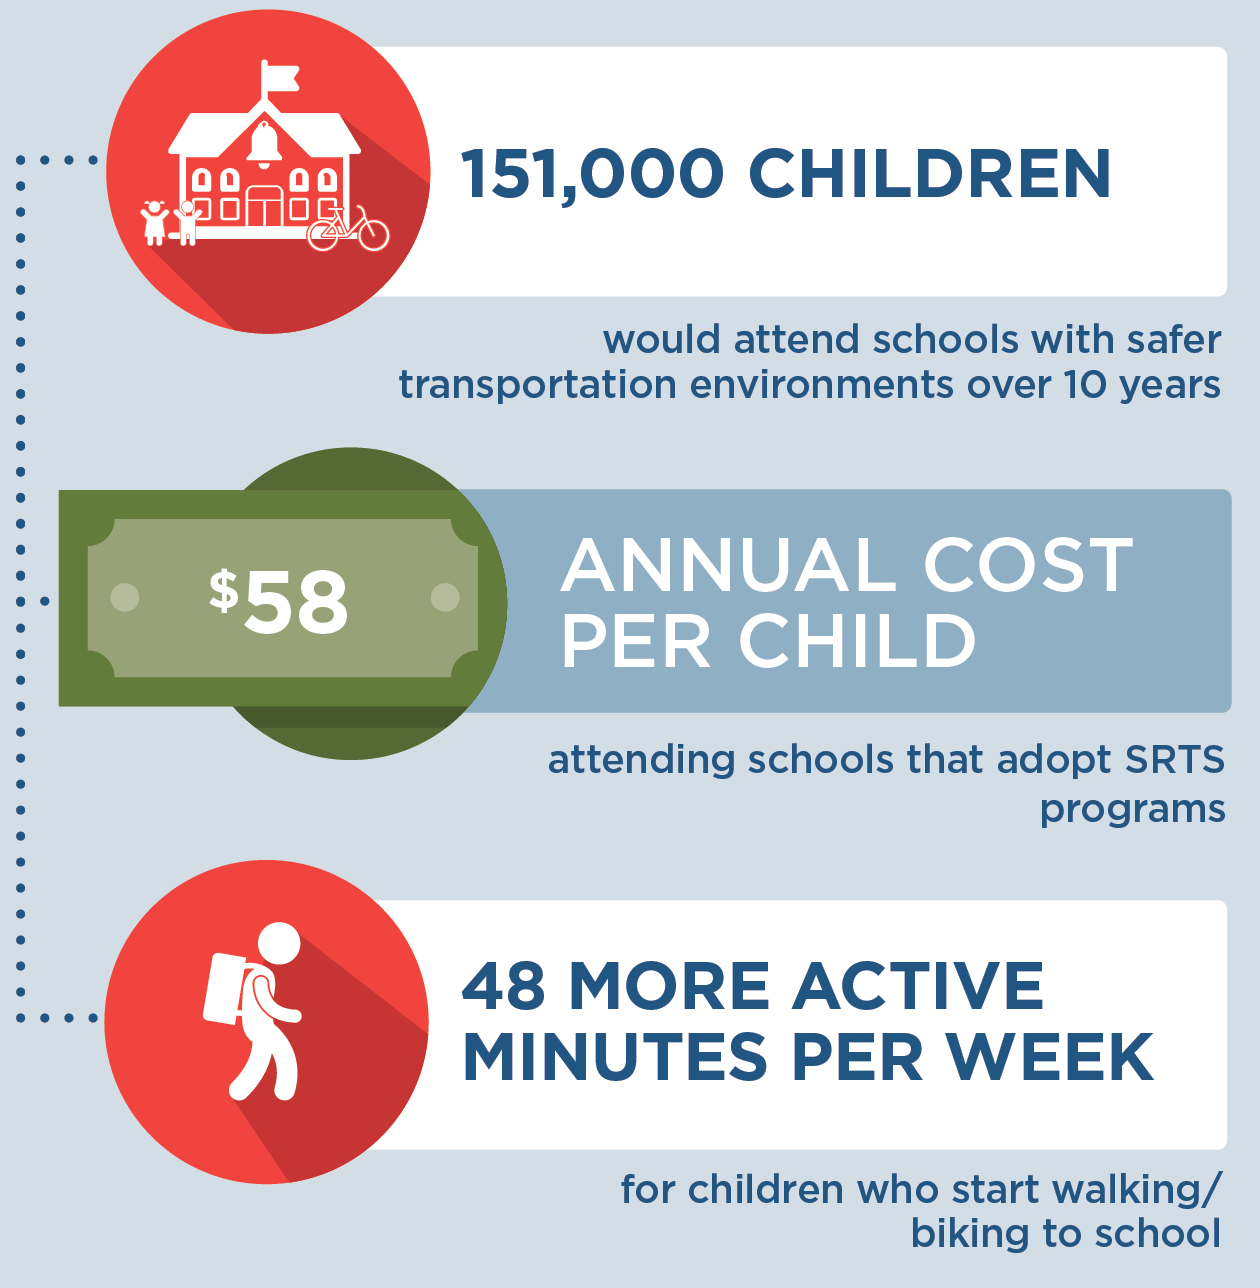 If Safe Routes to School was expanded in Wisconsin, then by the end of 2030, 151,000 children would attend schools with safer transportation environments, and children who start walking or biking to school would get 48 more active minutes per week. This program would cost $58 per child annually to implement, for those children attending schools that adopt Safe Routes to School programs.